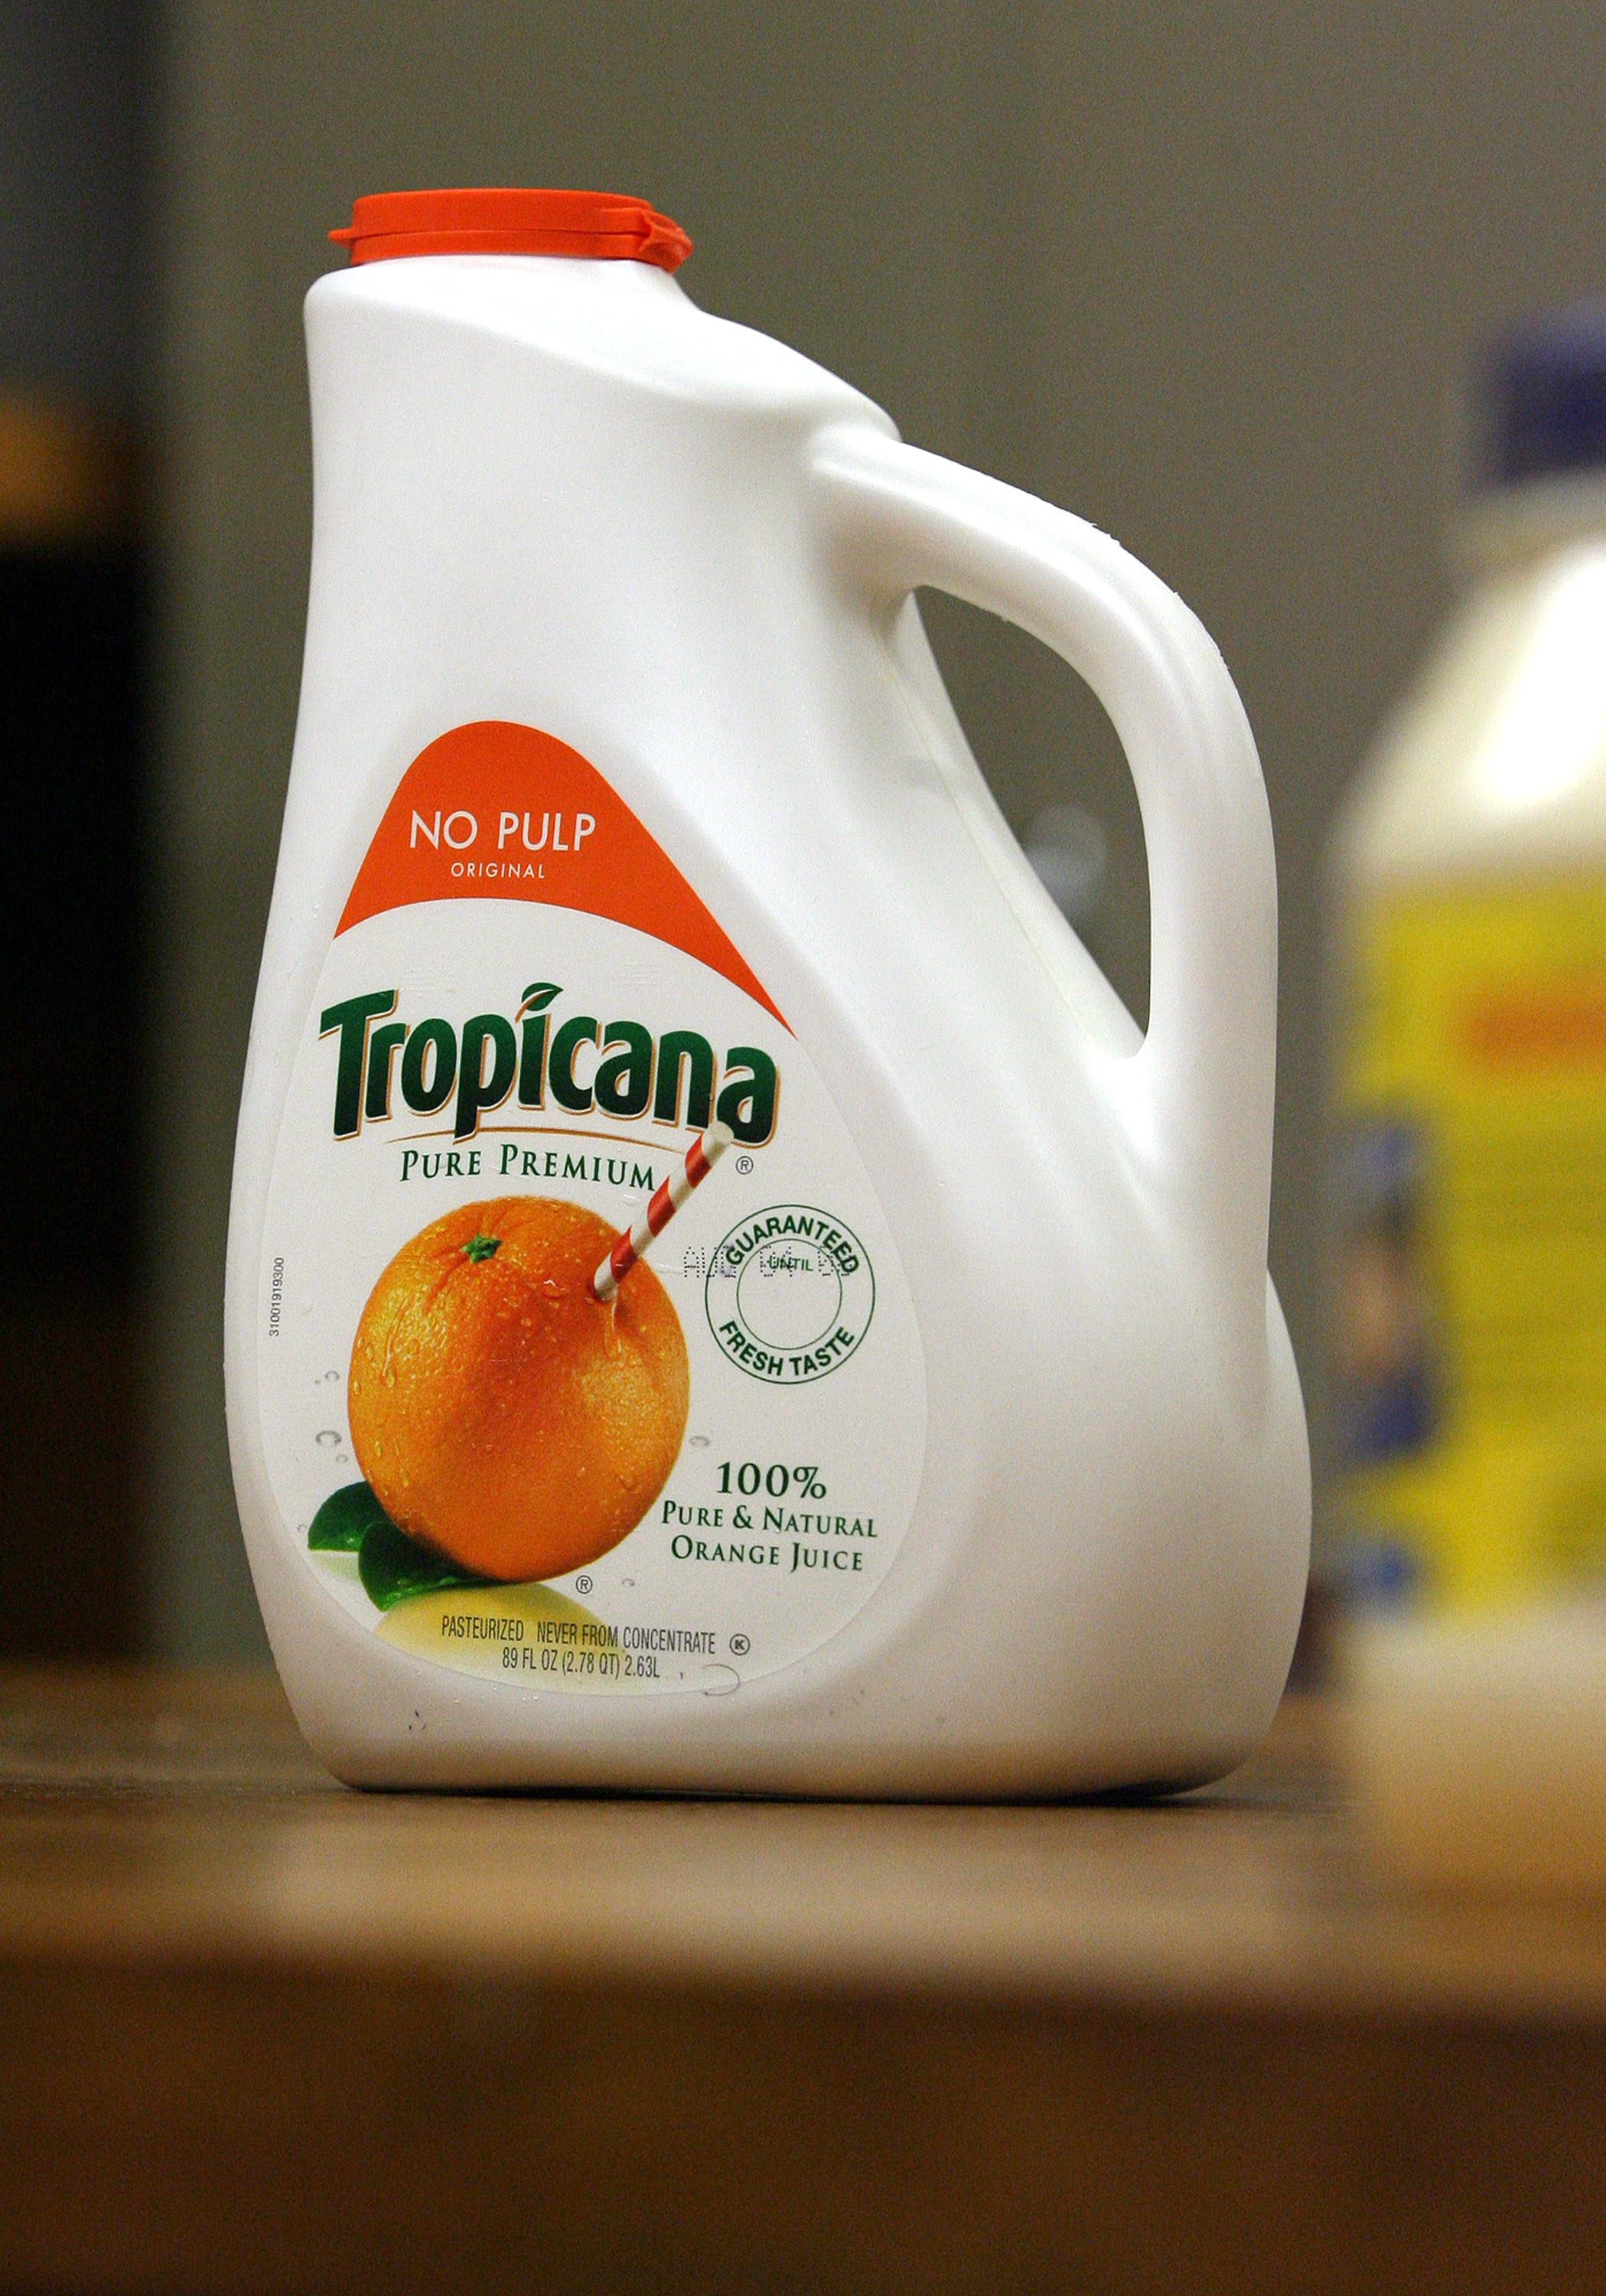 PepsiCo's Tropicana Pure Premium will receive a non-GMO label next year.